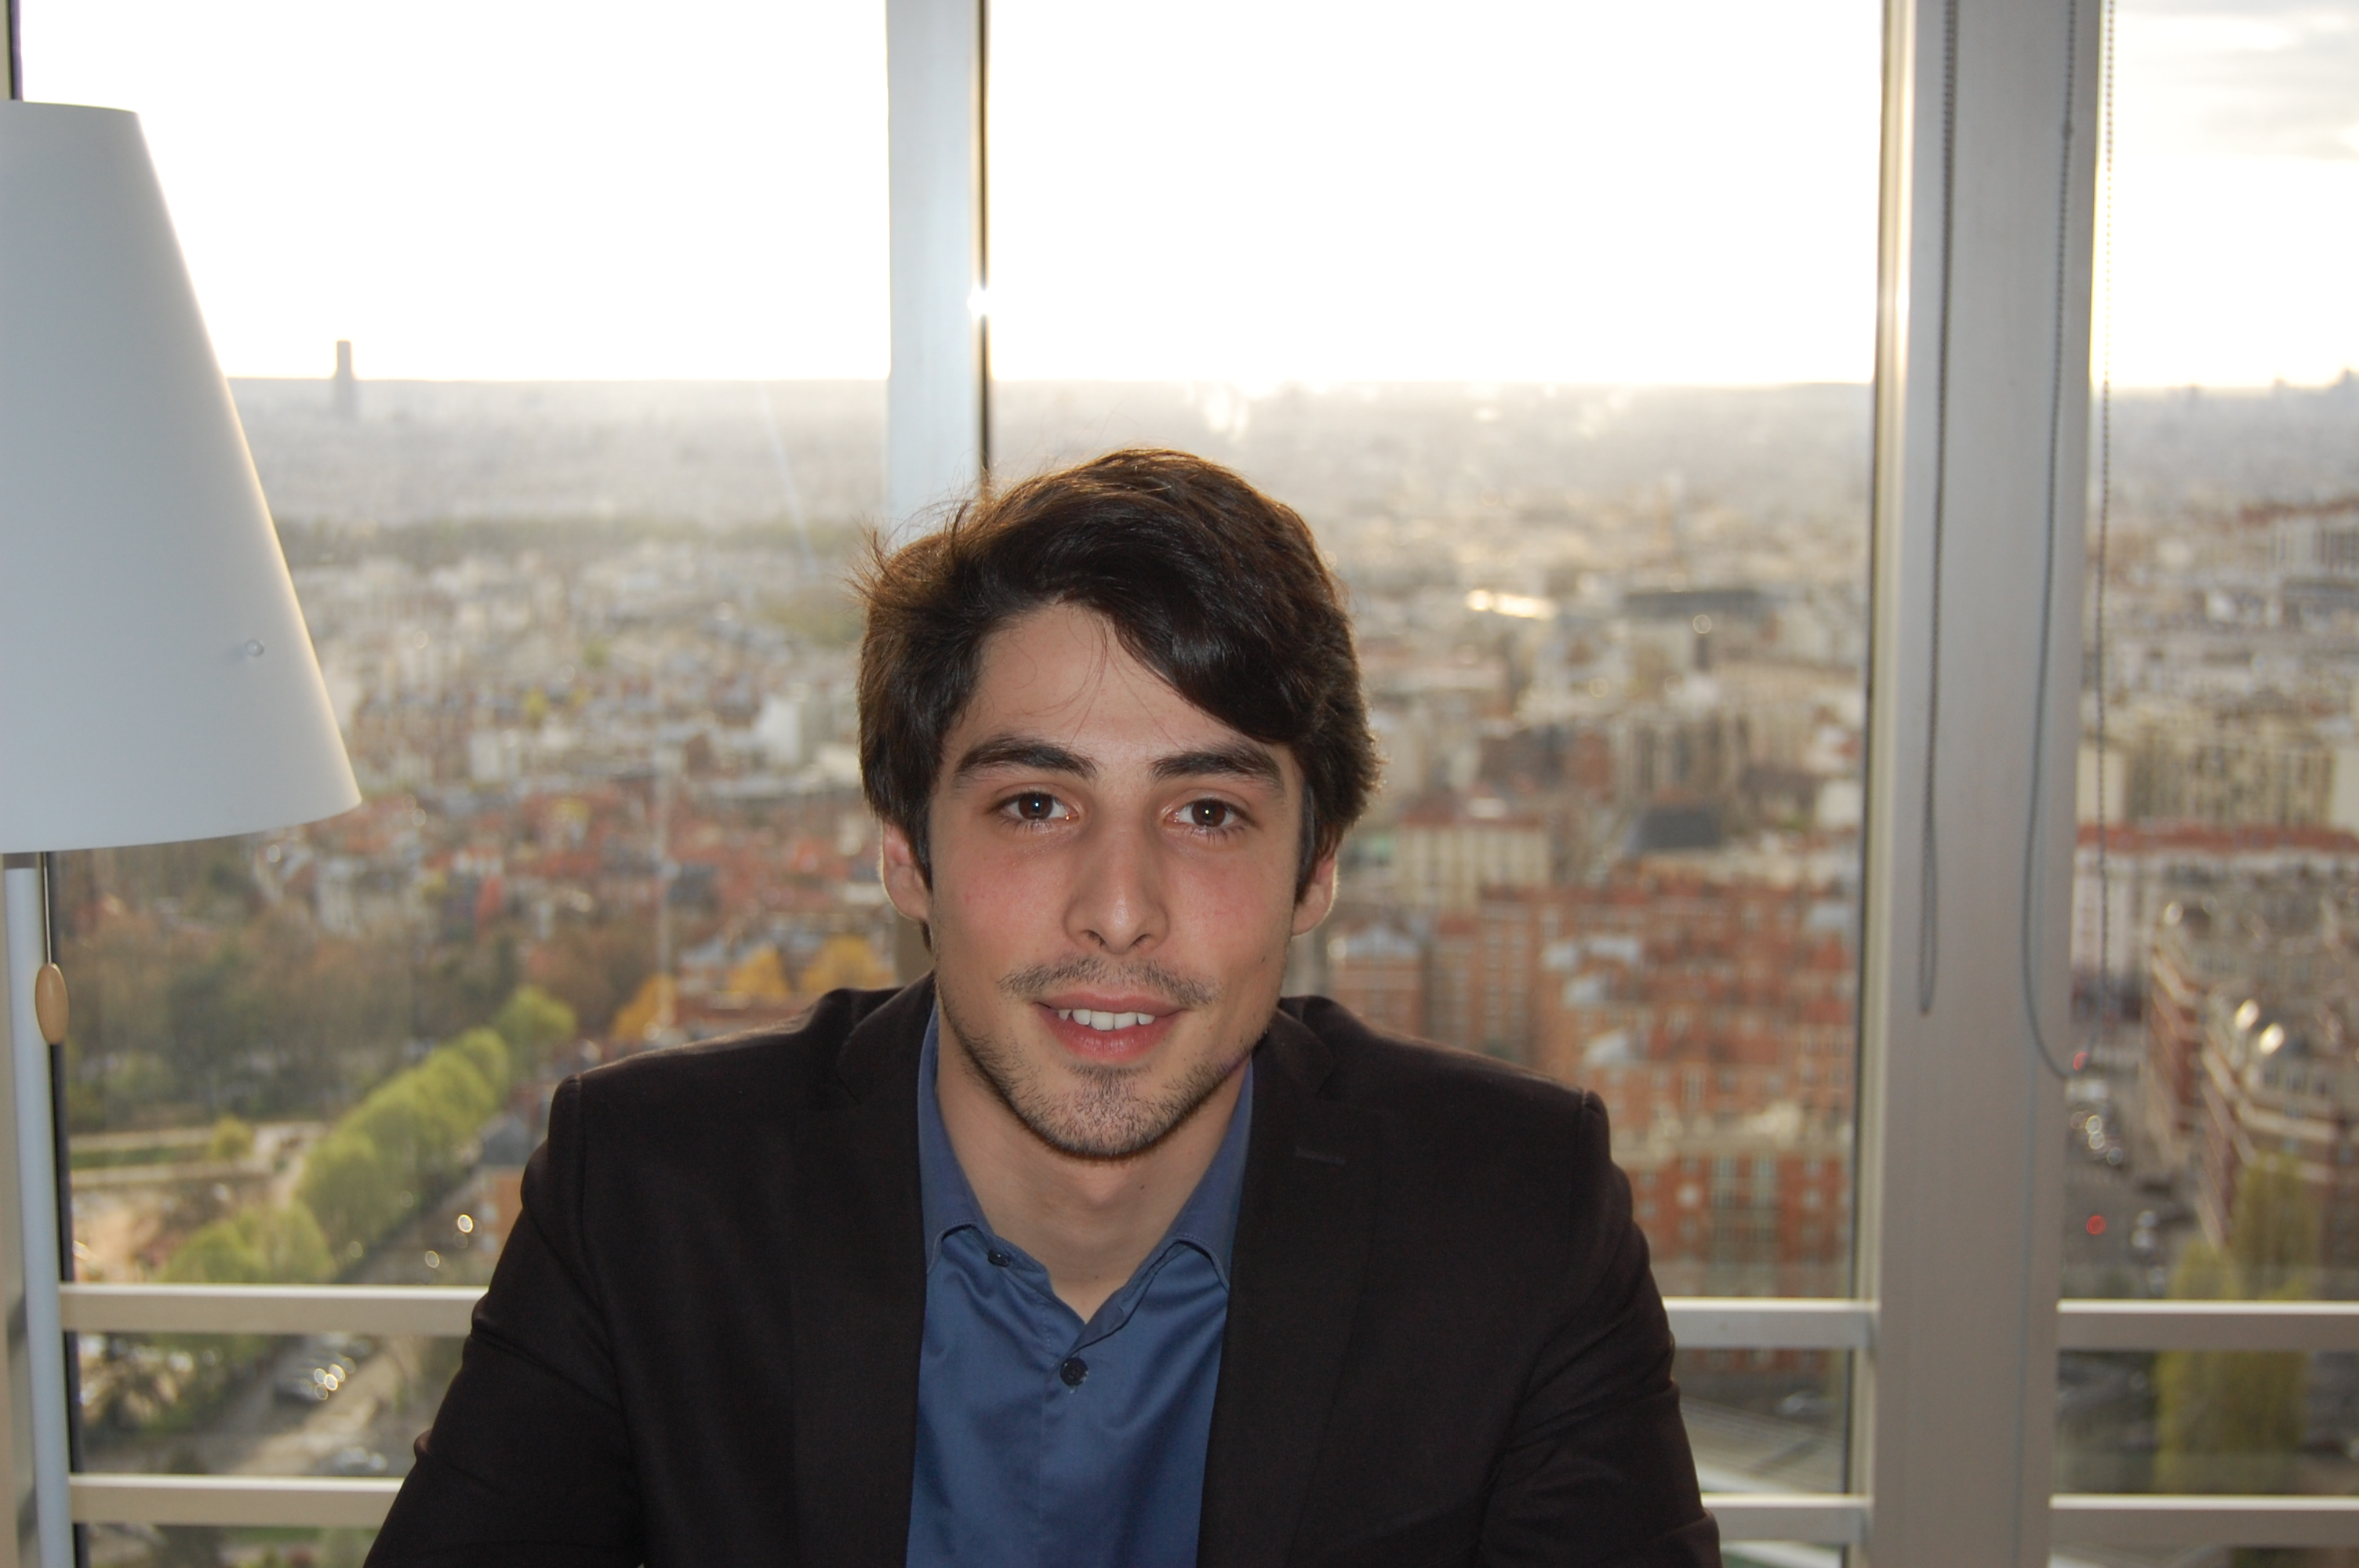 Valentin Turpaud - étudiant en master marketing vente au CFA du CNAM